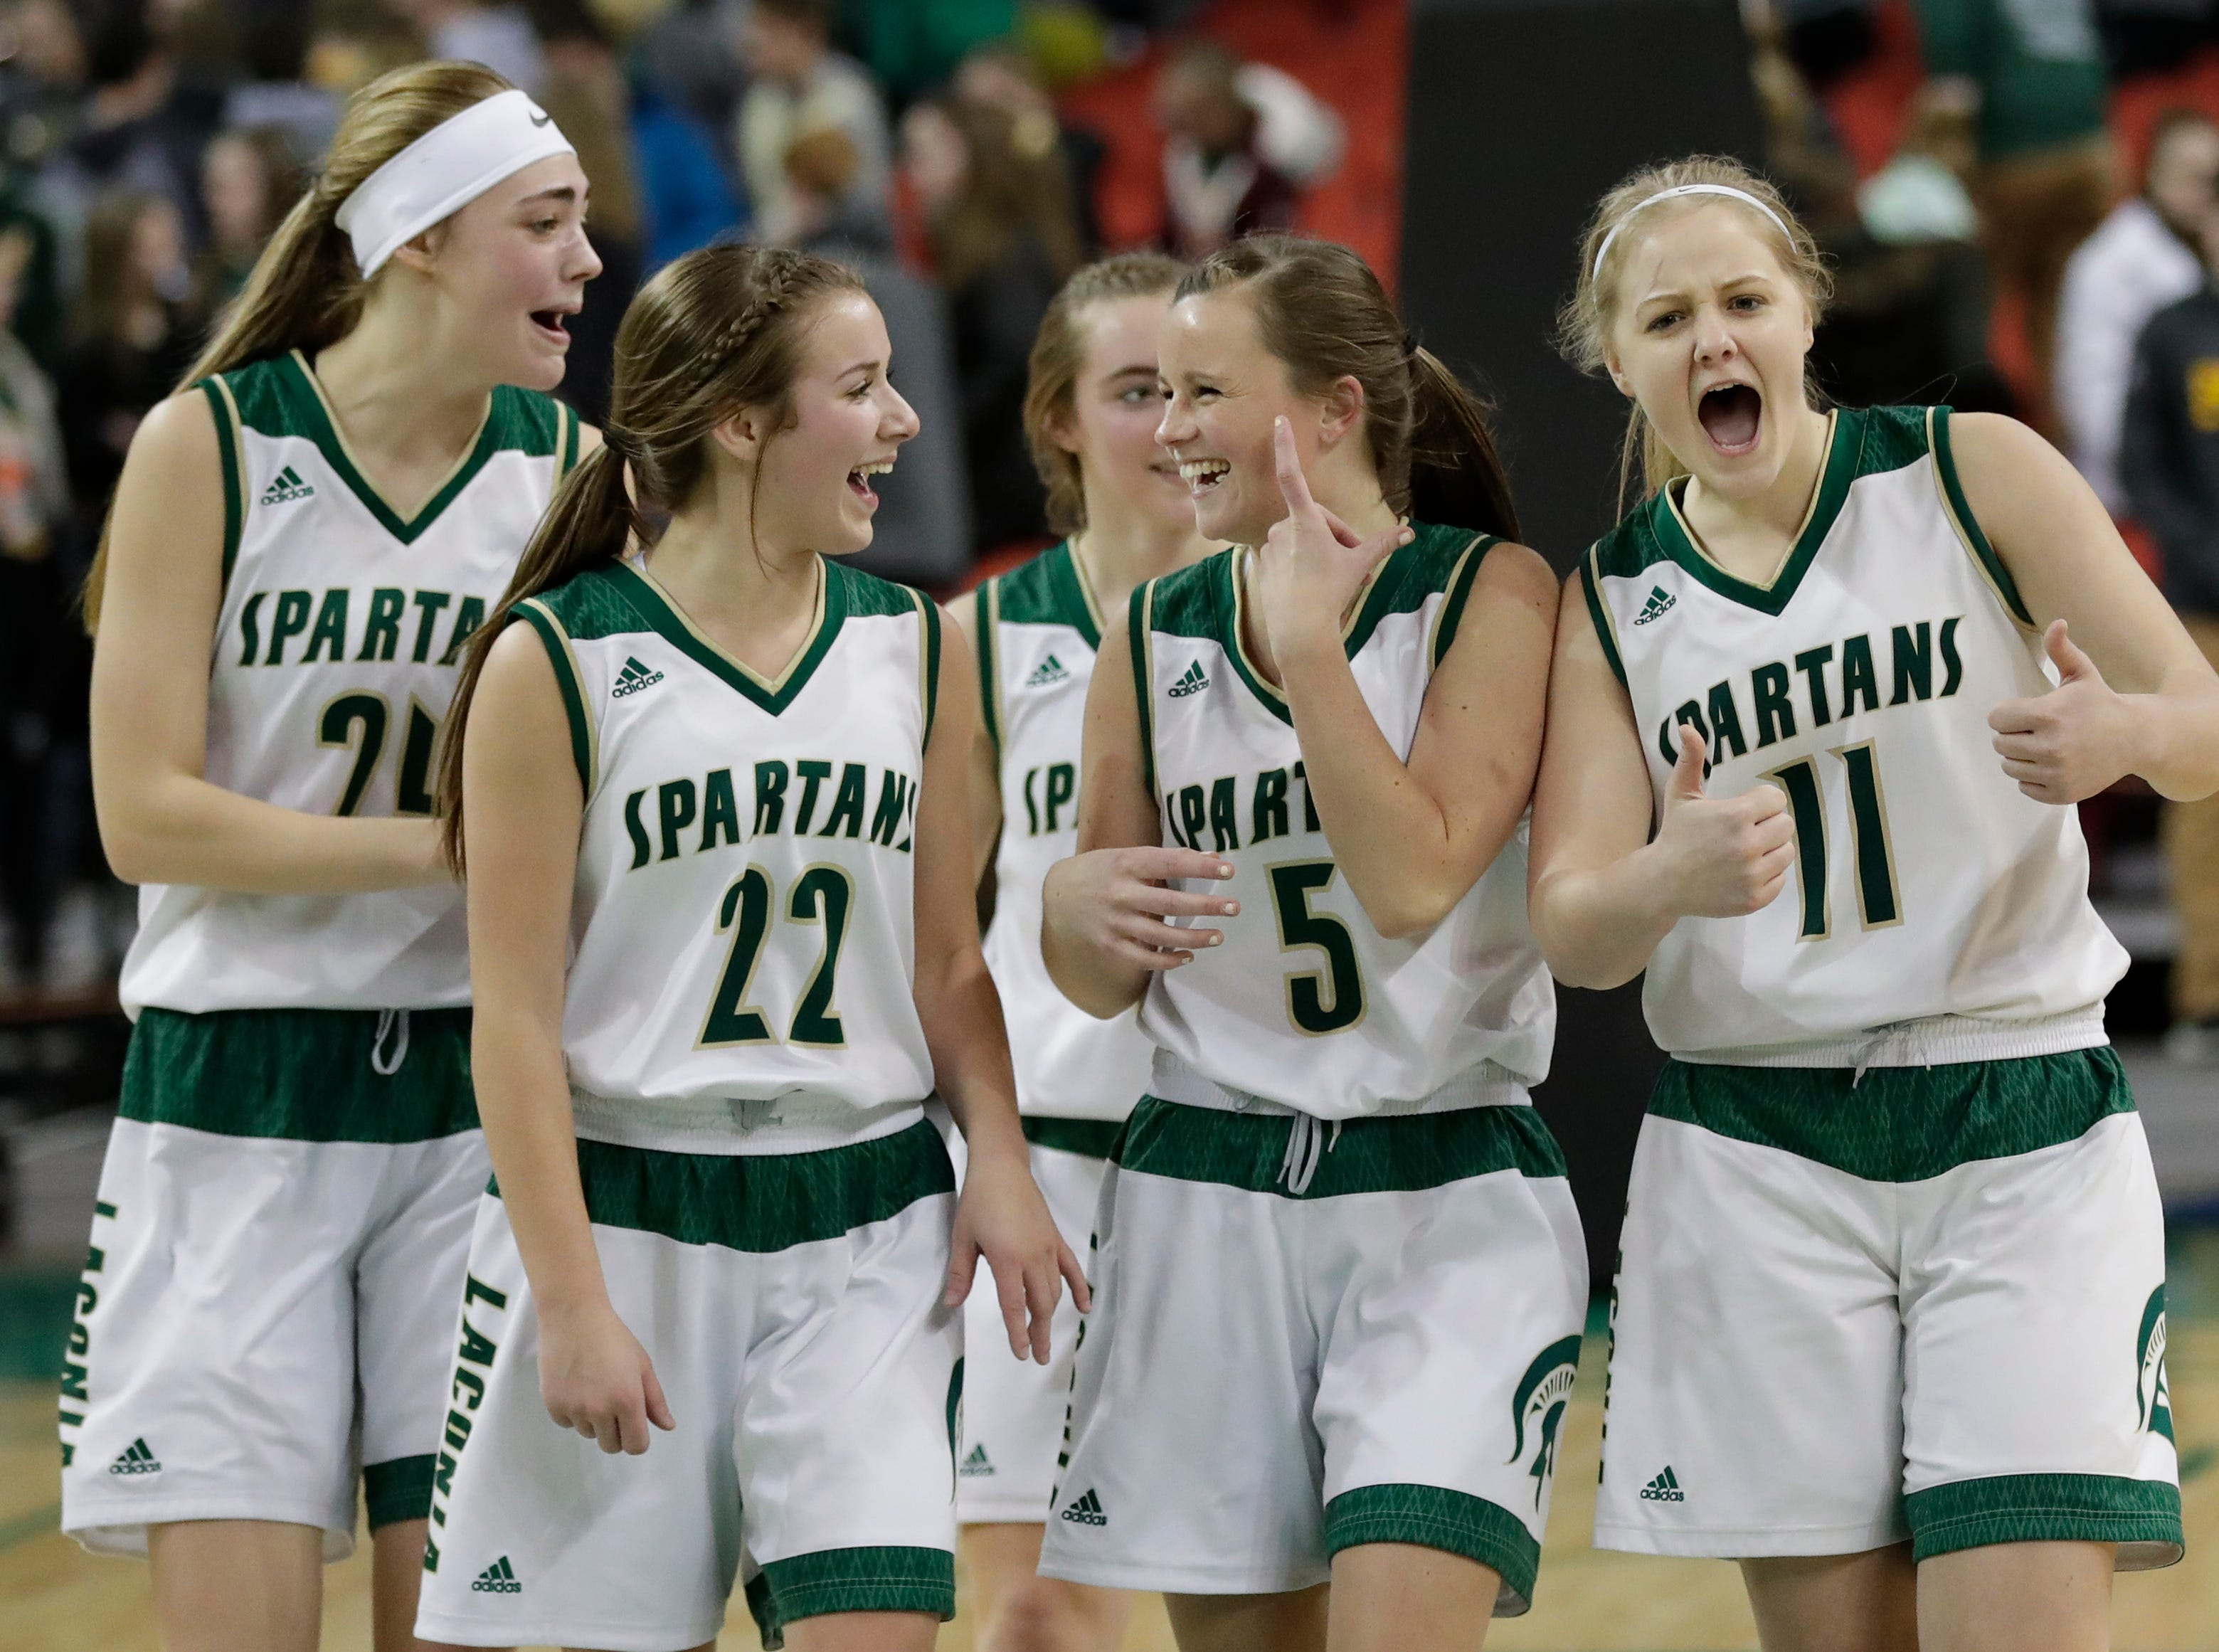 Laconia's Maci Grade (24), Haley Rens (22), Jen Beattie (5) Faith Weed (11) celebrate their 67-53 victory against Freedom during their Division 3 semifinal game at the WIAA girls state basketball tournament Thursday, March 7, 2019, at the Resch Center in Ashwaubenon, Wis. Dan Powers/USA TODAY NETWORK-Wisconsin